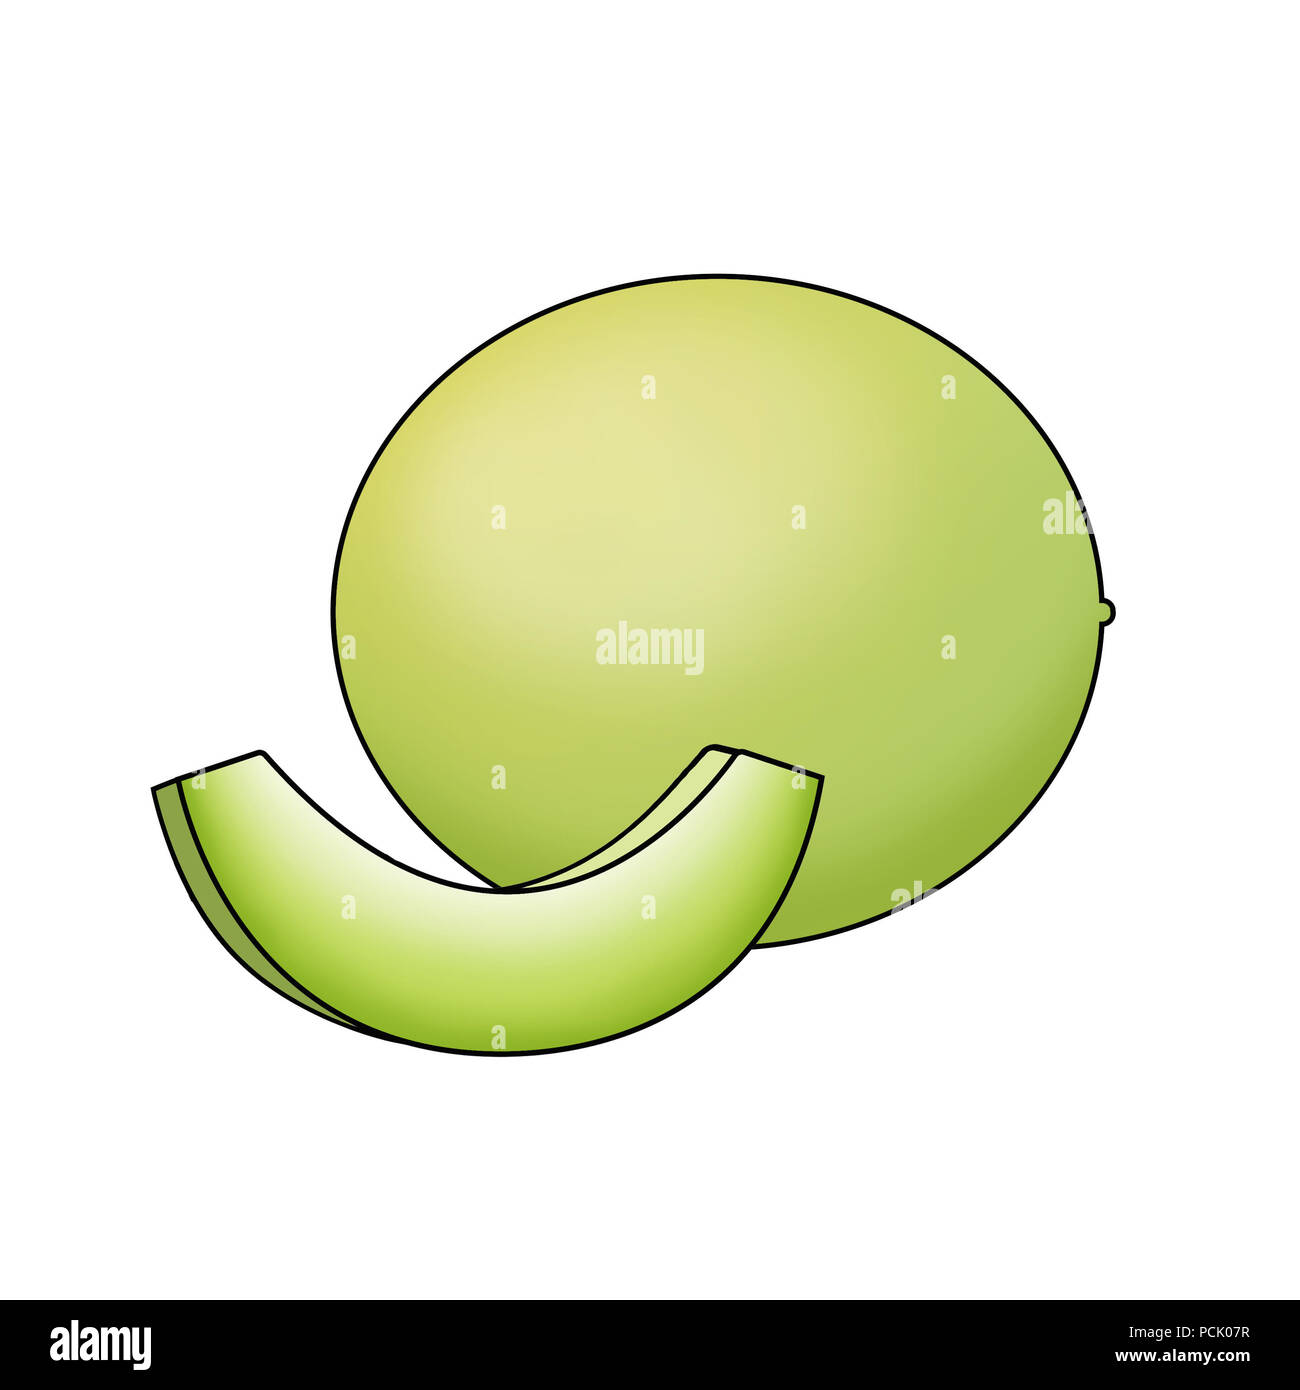 Illustration of honeydew melon, one whole and one sliced, against a white background - Stock Image